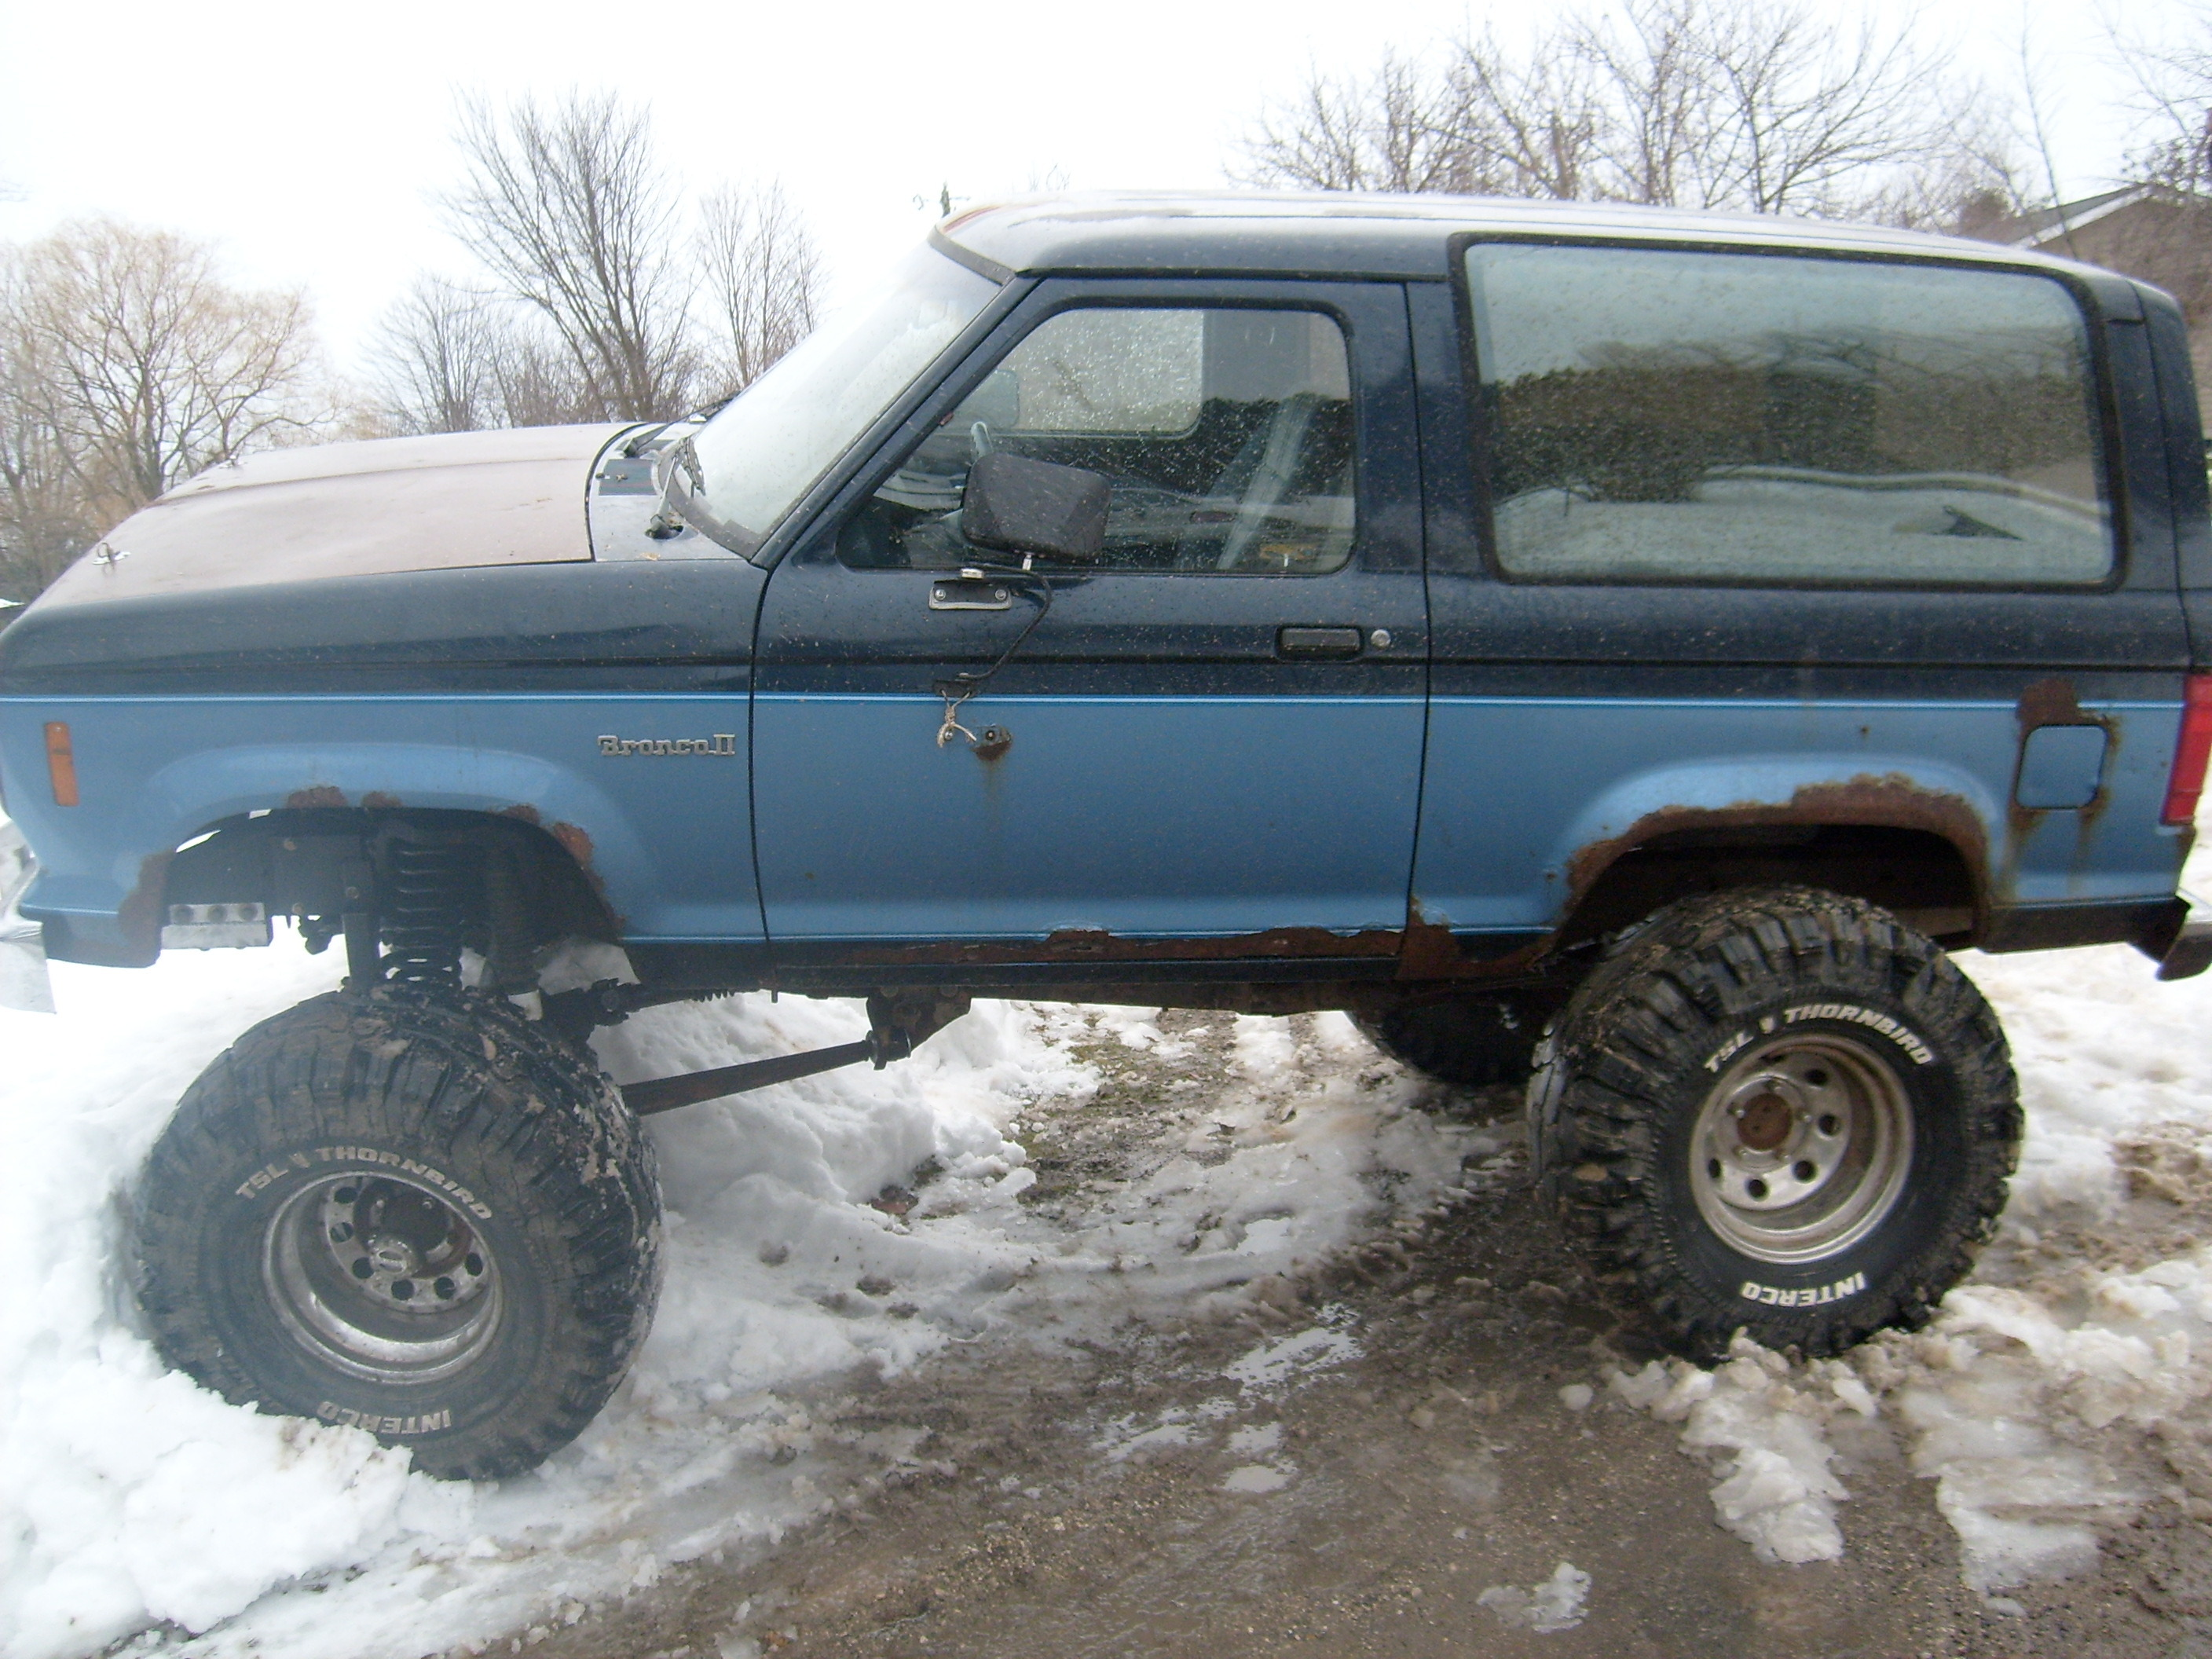 Nightstalker00 1987 Ford Bronco Ii Specs Photos Modification Info 33230570001 Original